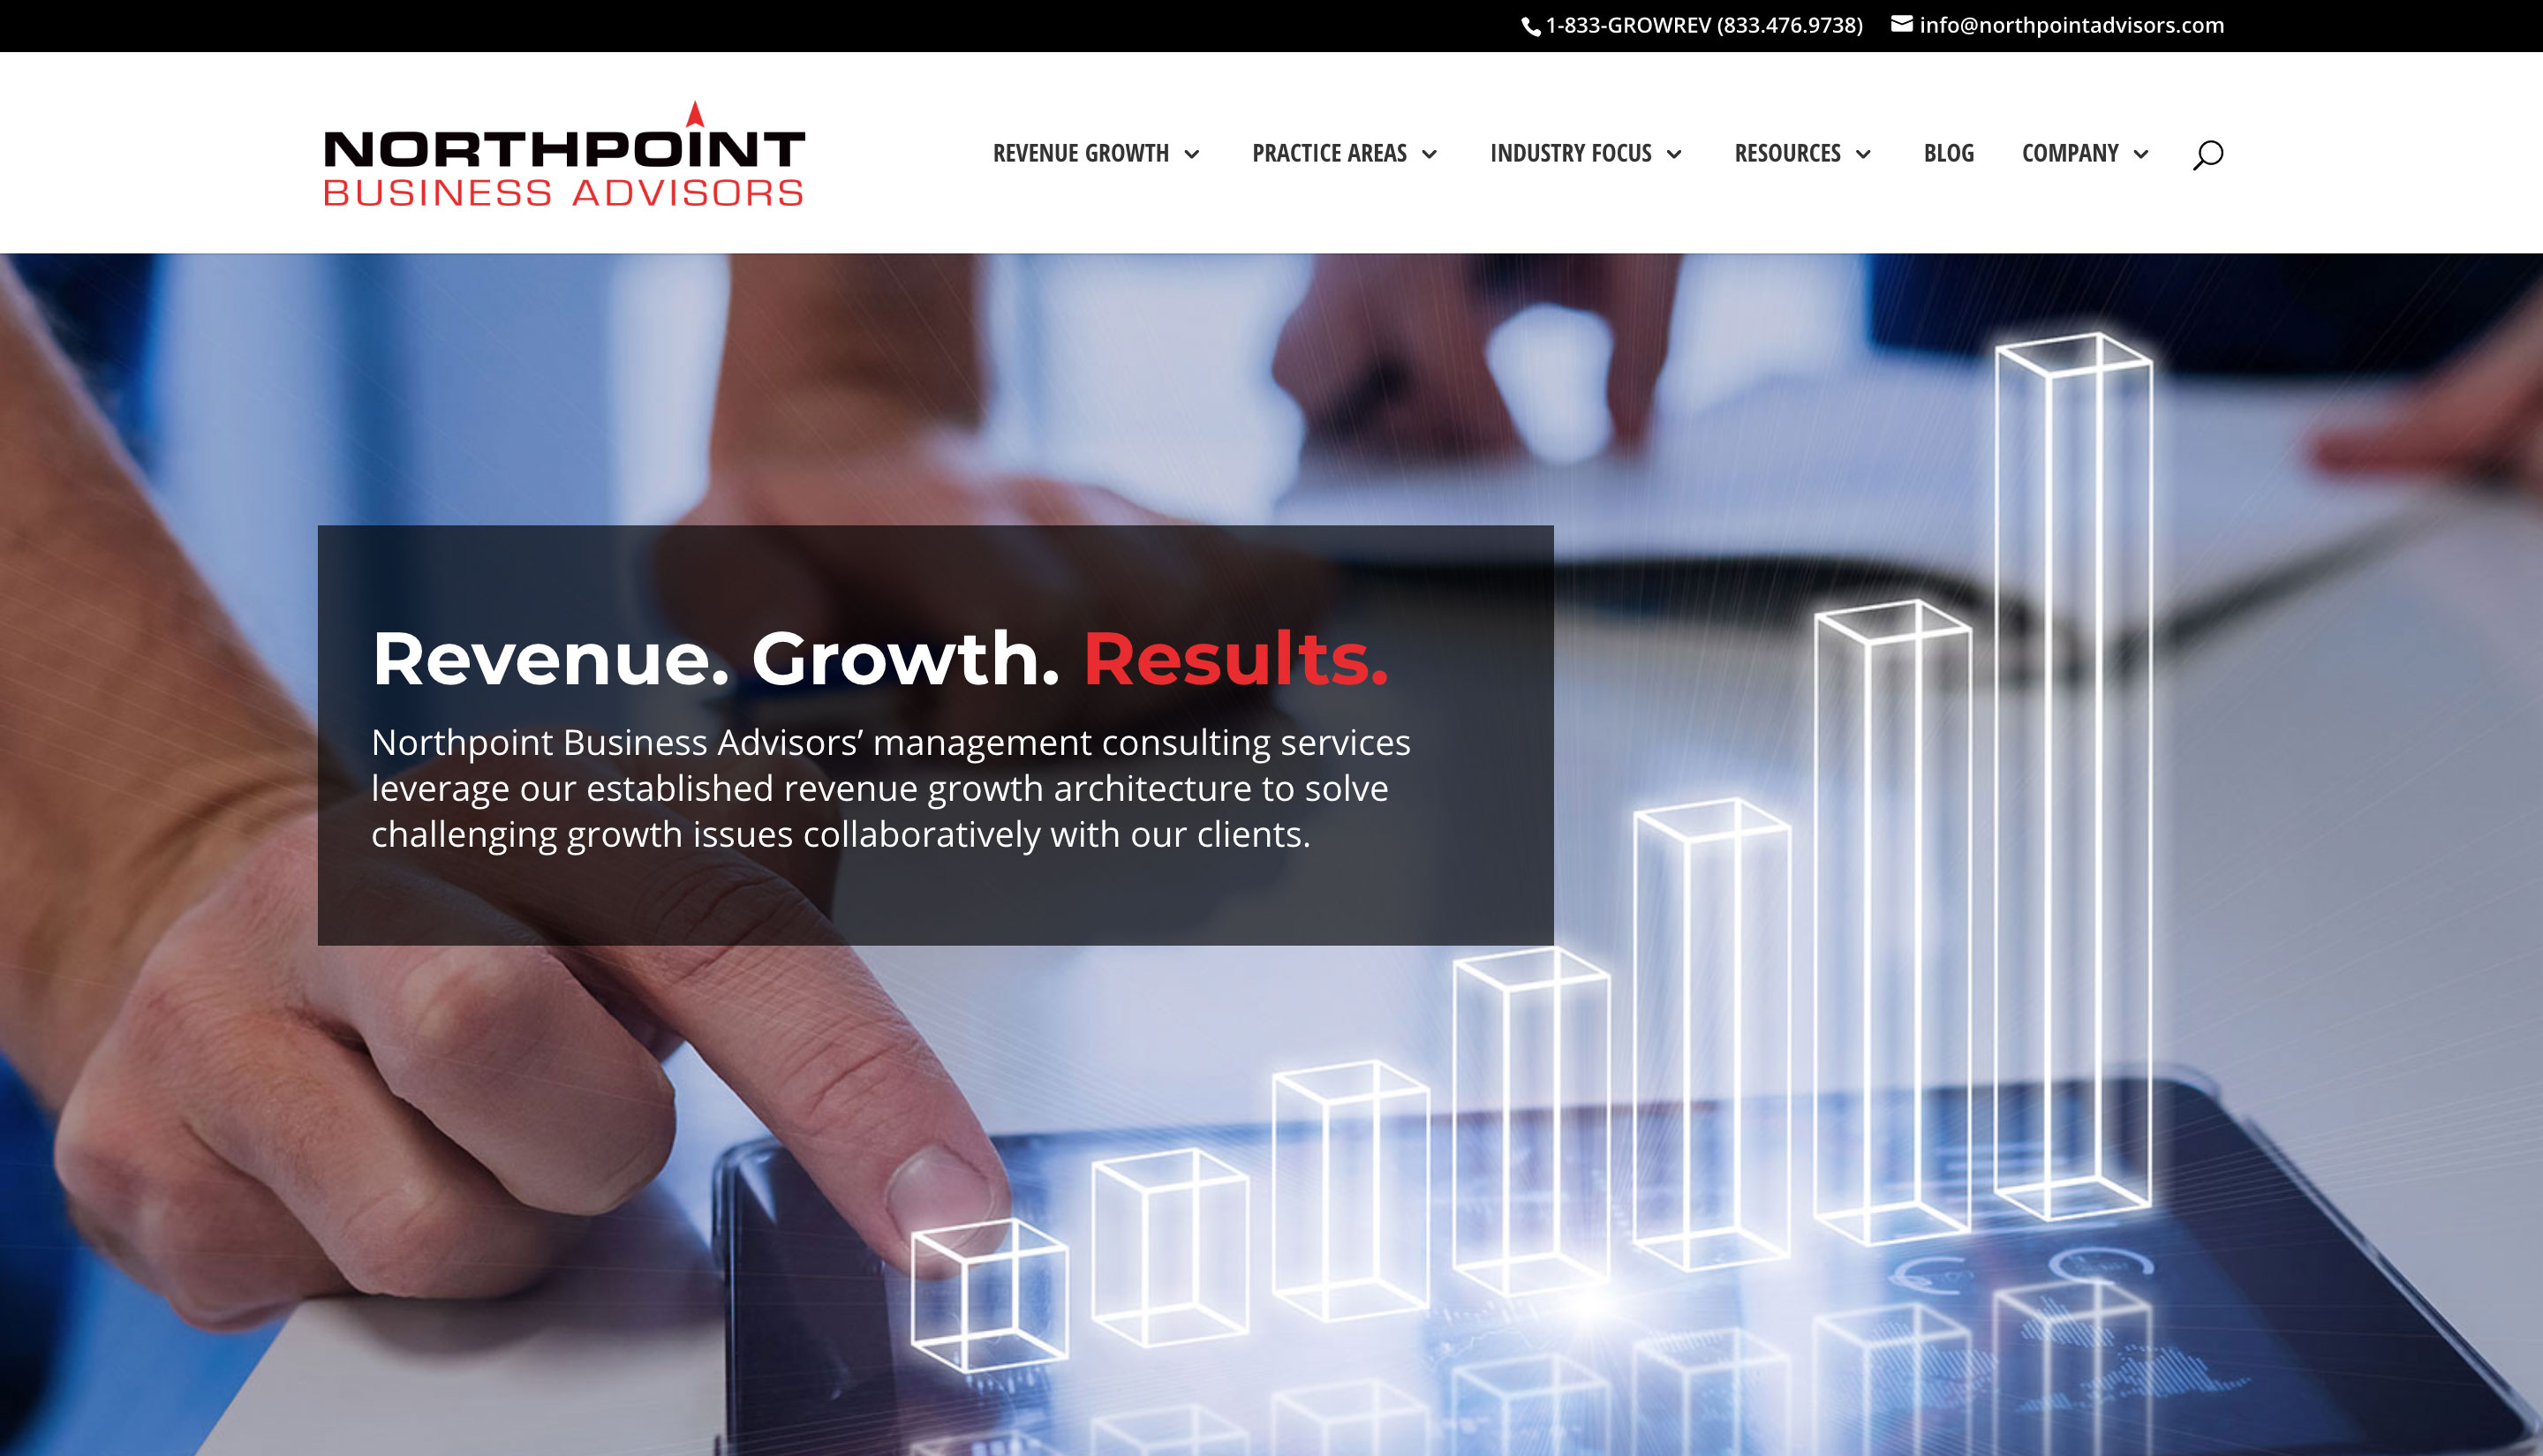 Northpoint Business Advisors Website